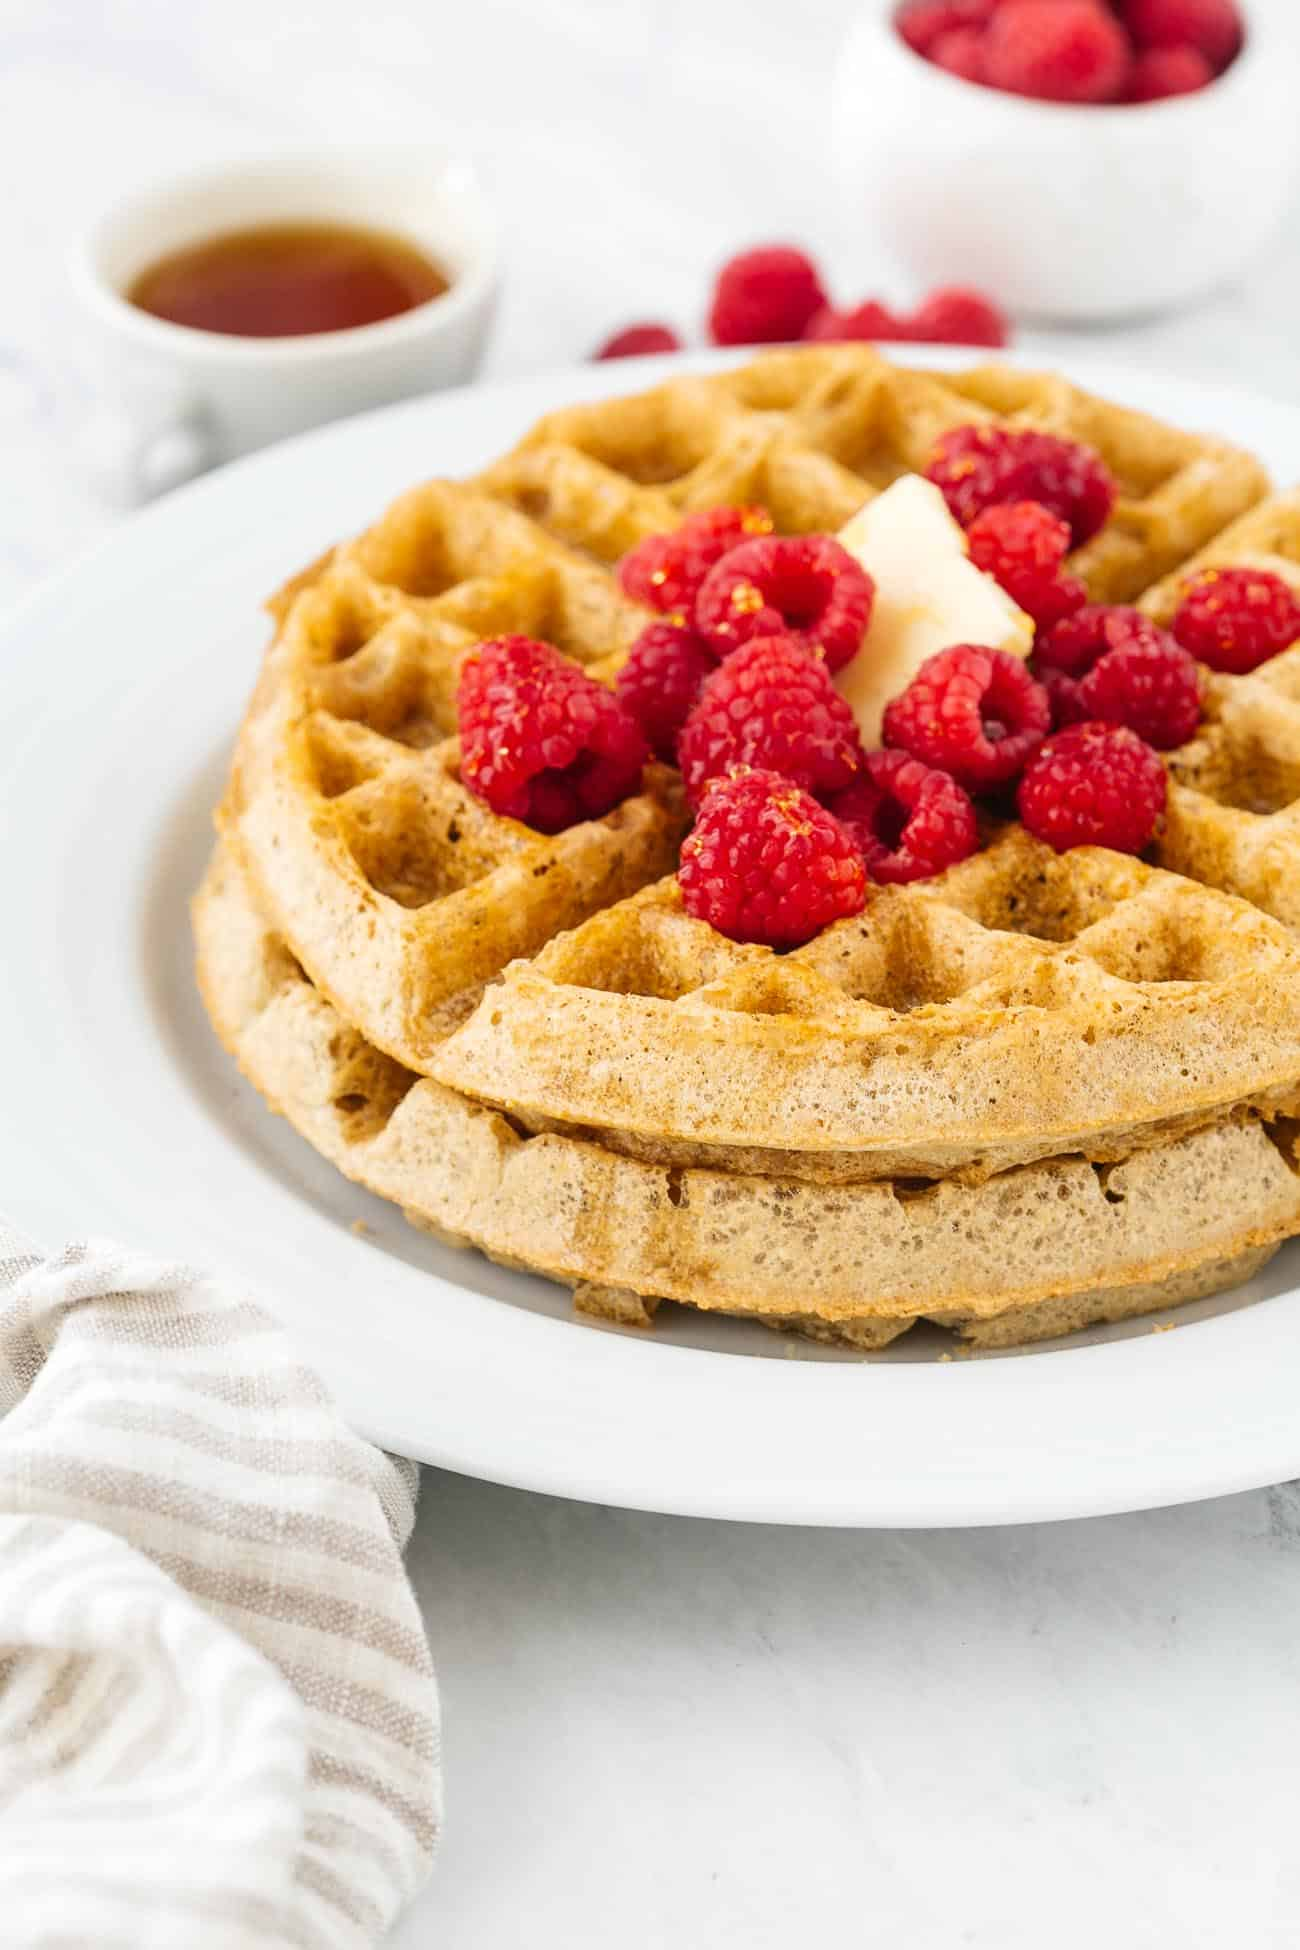 Close up of gluten free waffles with fresh berries.